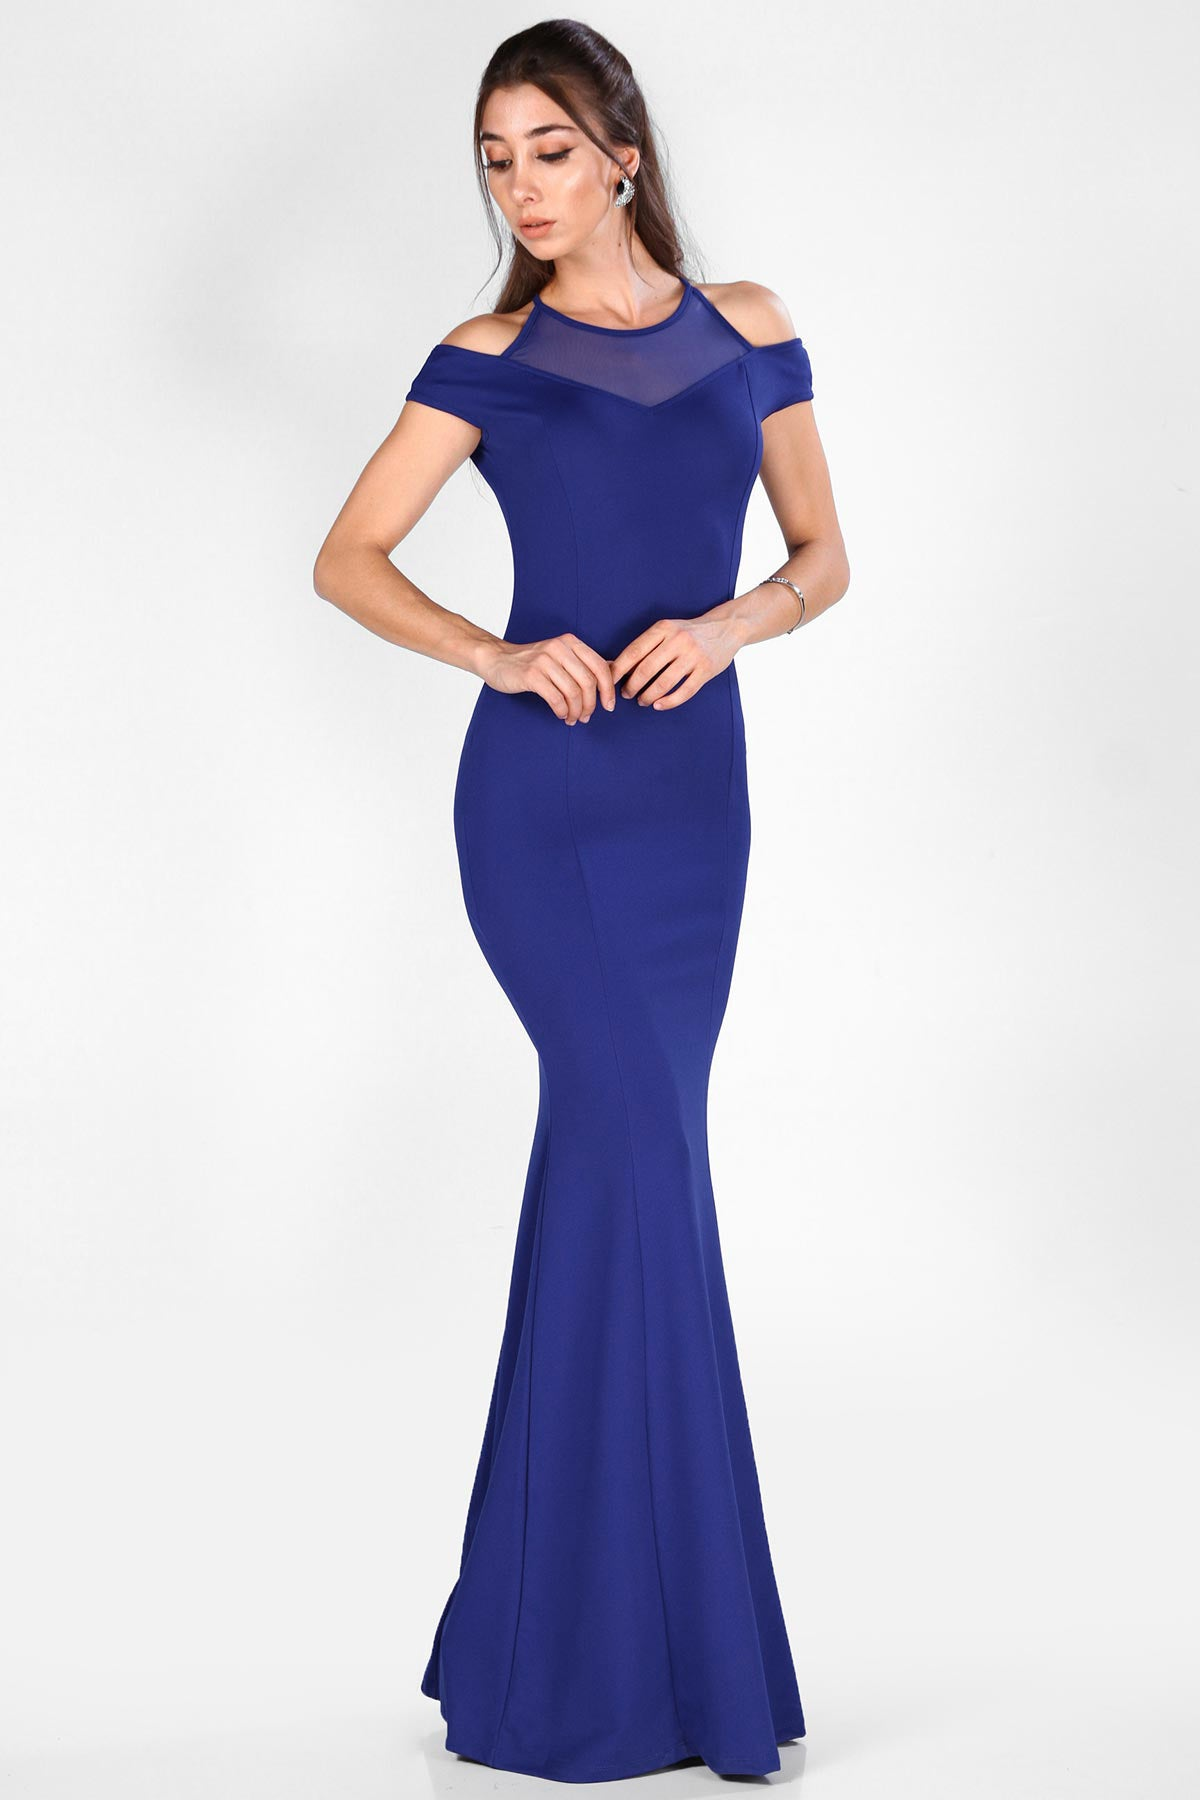 Women's Décolletage Top Saxe Evening Gown